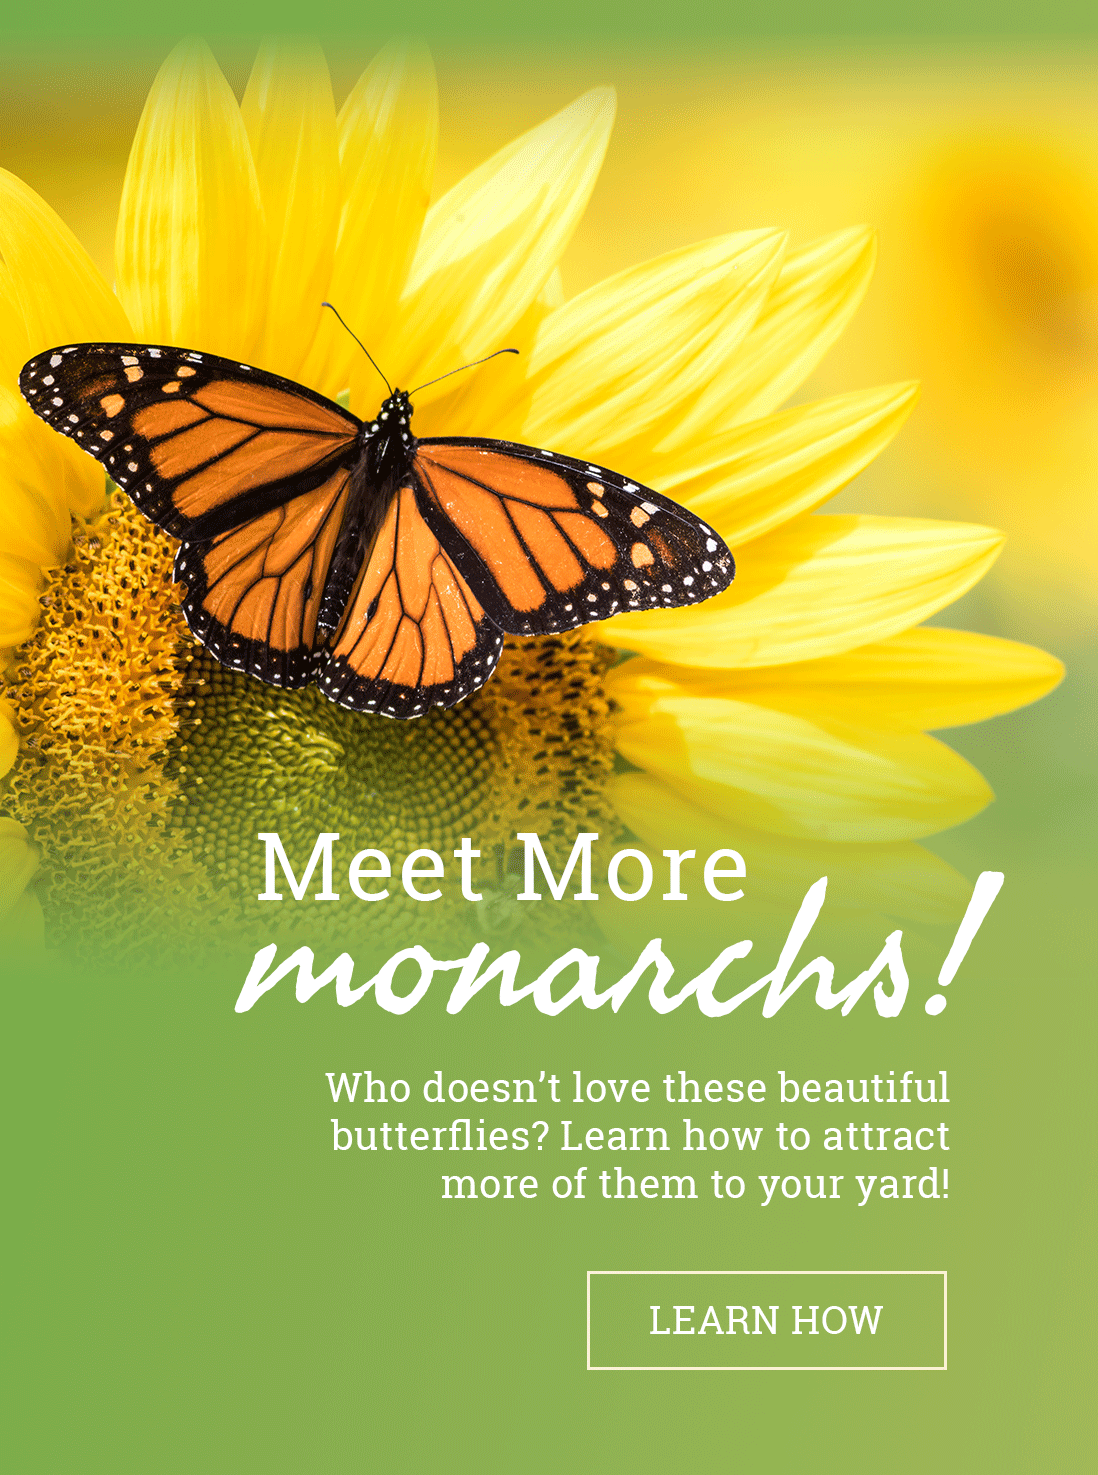 Attract this famous pollinator to your garden!